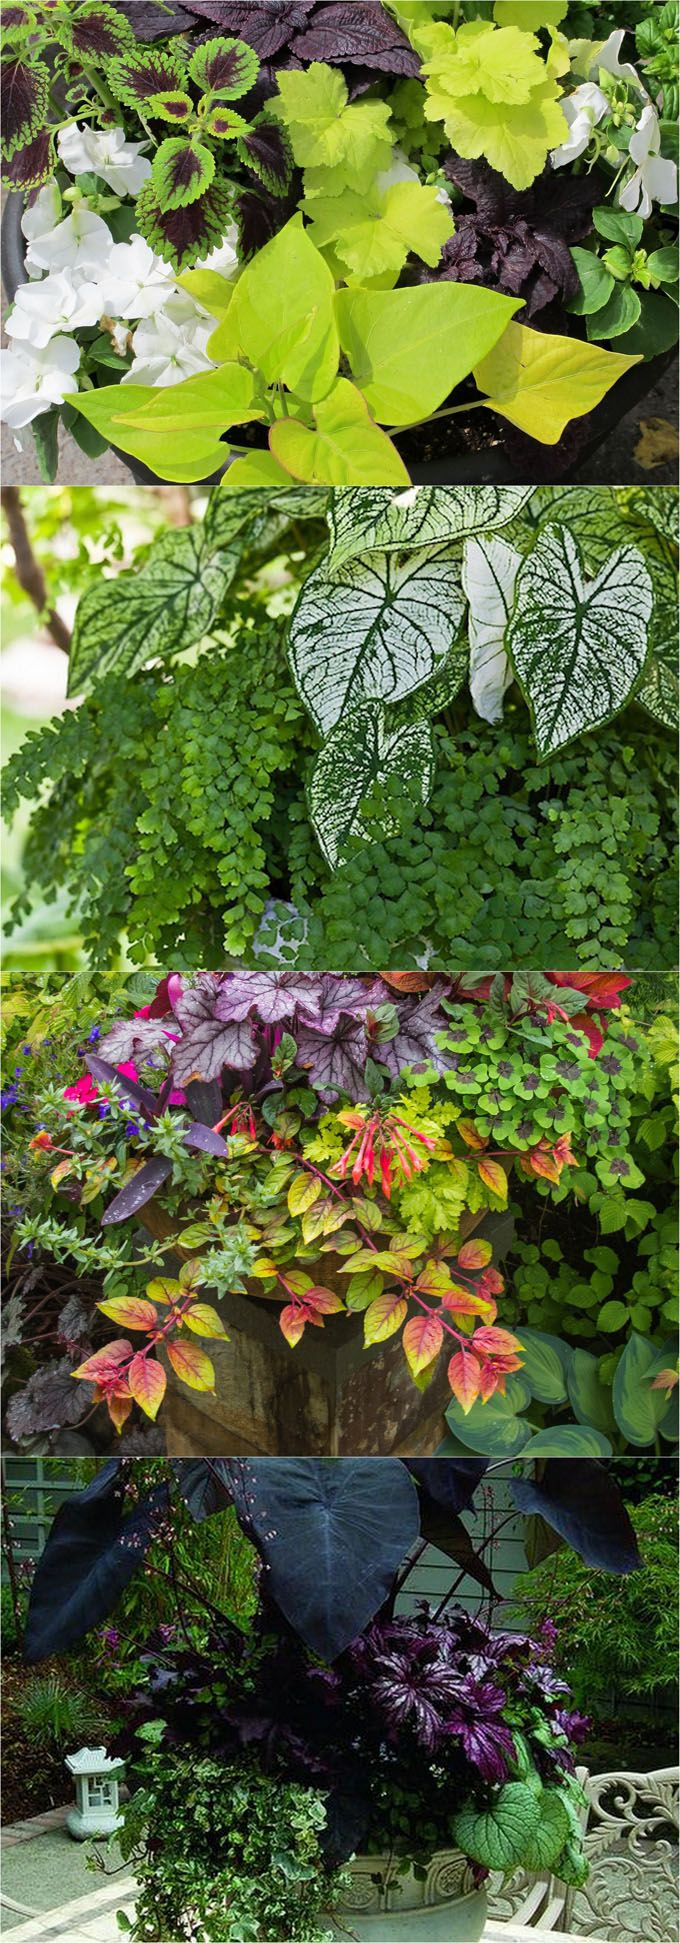 Best 25+ Shade Plants Ideas On Pinterest | Plants For Shade, Shade Garden  And Shade Garden Plants